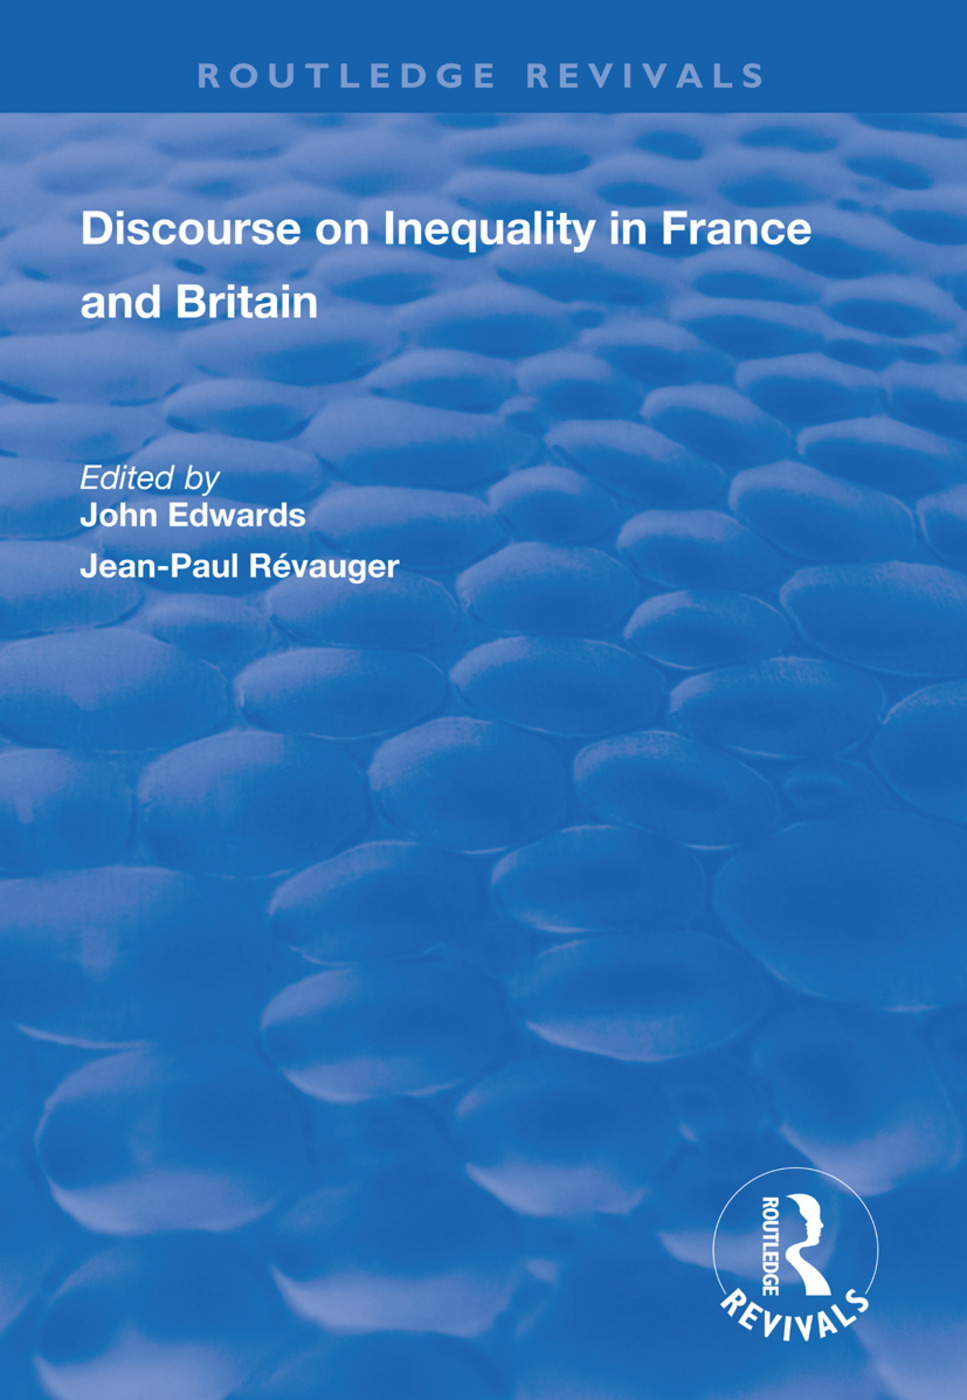 Discourse on Inequality in France and Britain